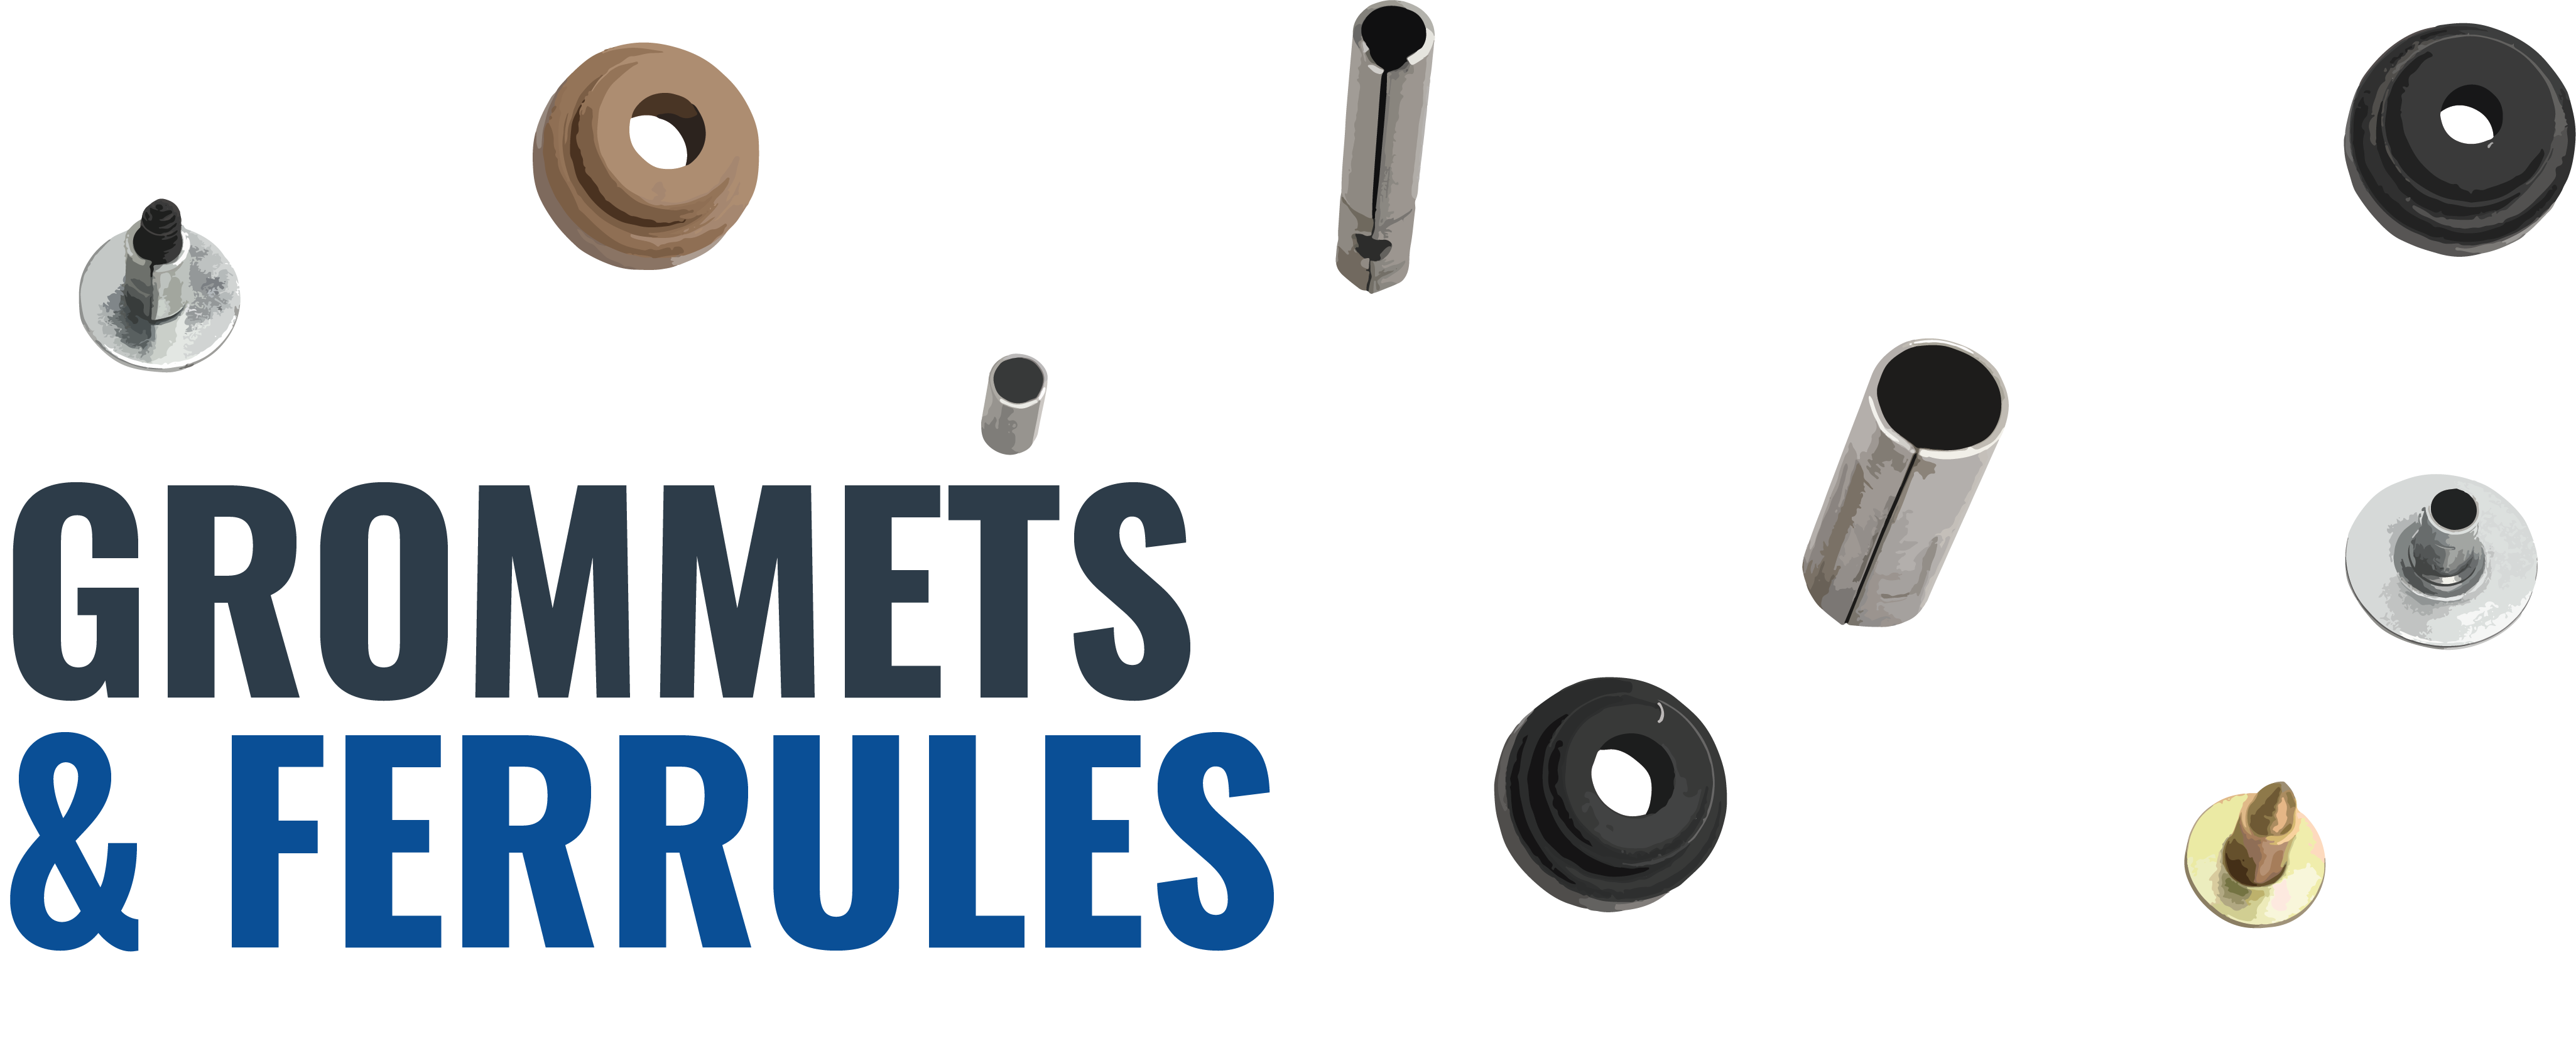 Rubber Grommet & Ferrule Options for Triangle's Motor Mount Bracket Arms